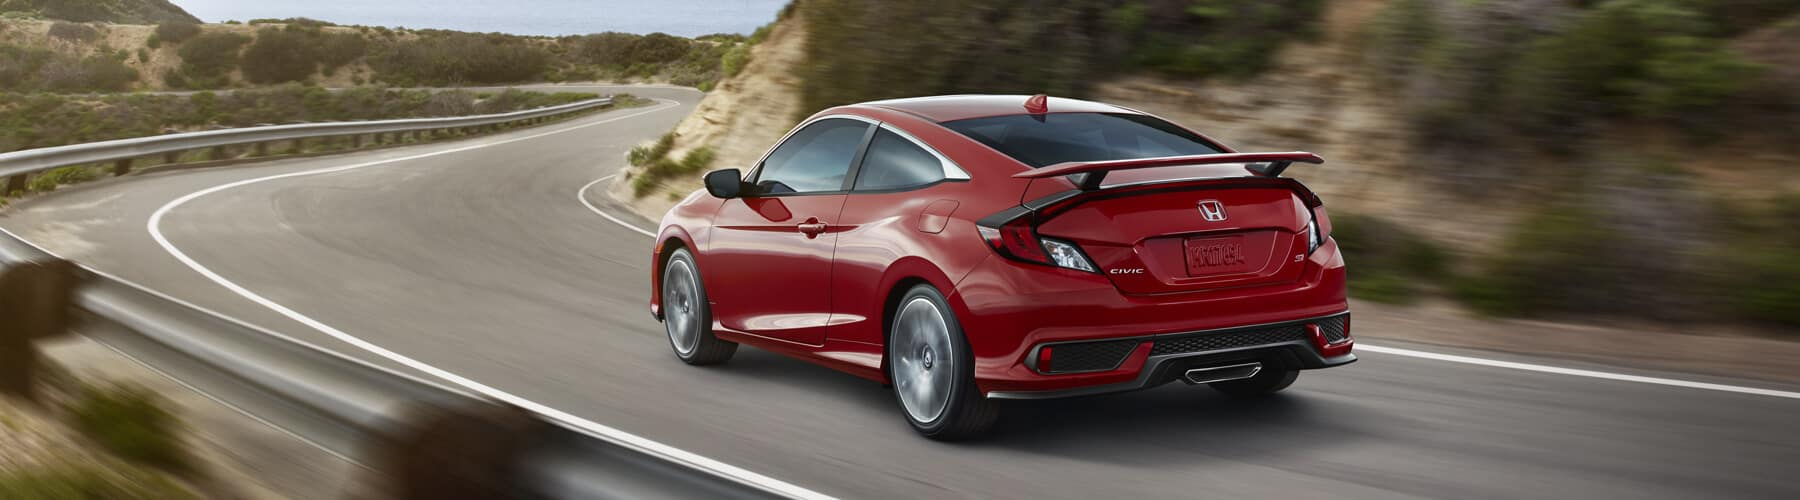 2018 Honda Civic Si Coupe Banner